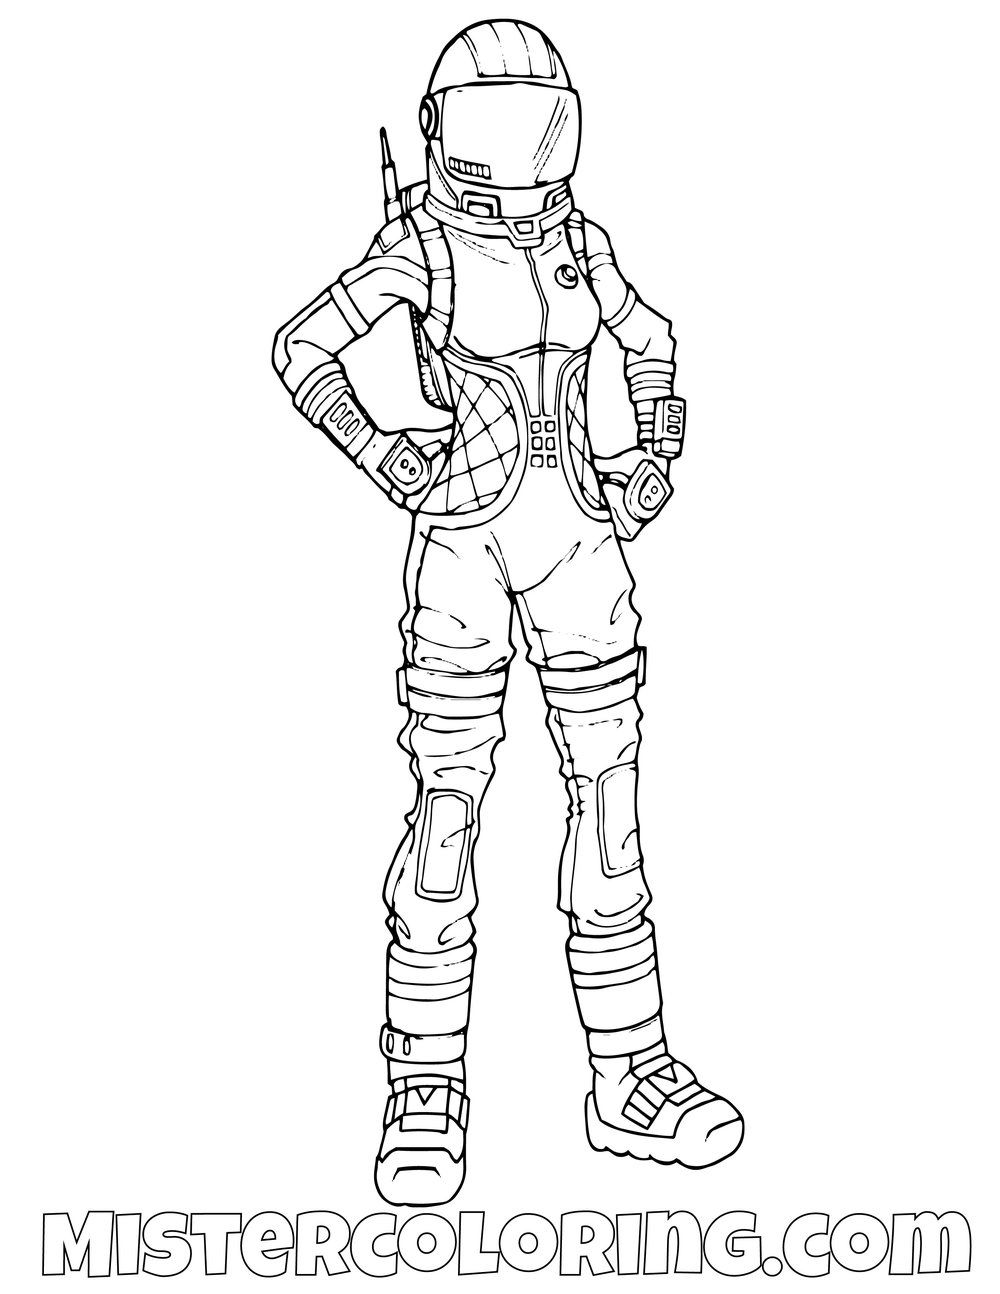 Free Dark Voyager Fortnite Coloring Page For Kids In 2019